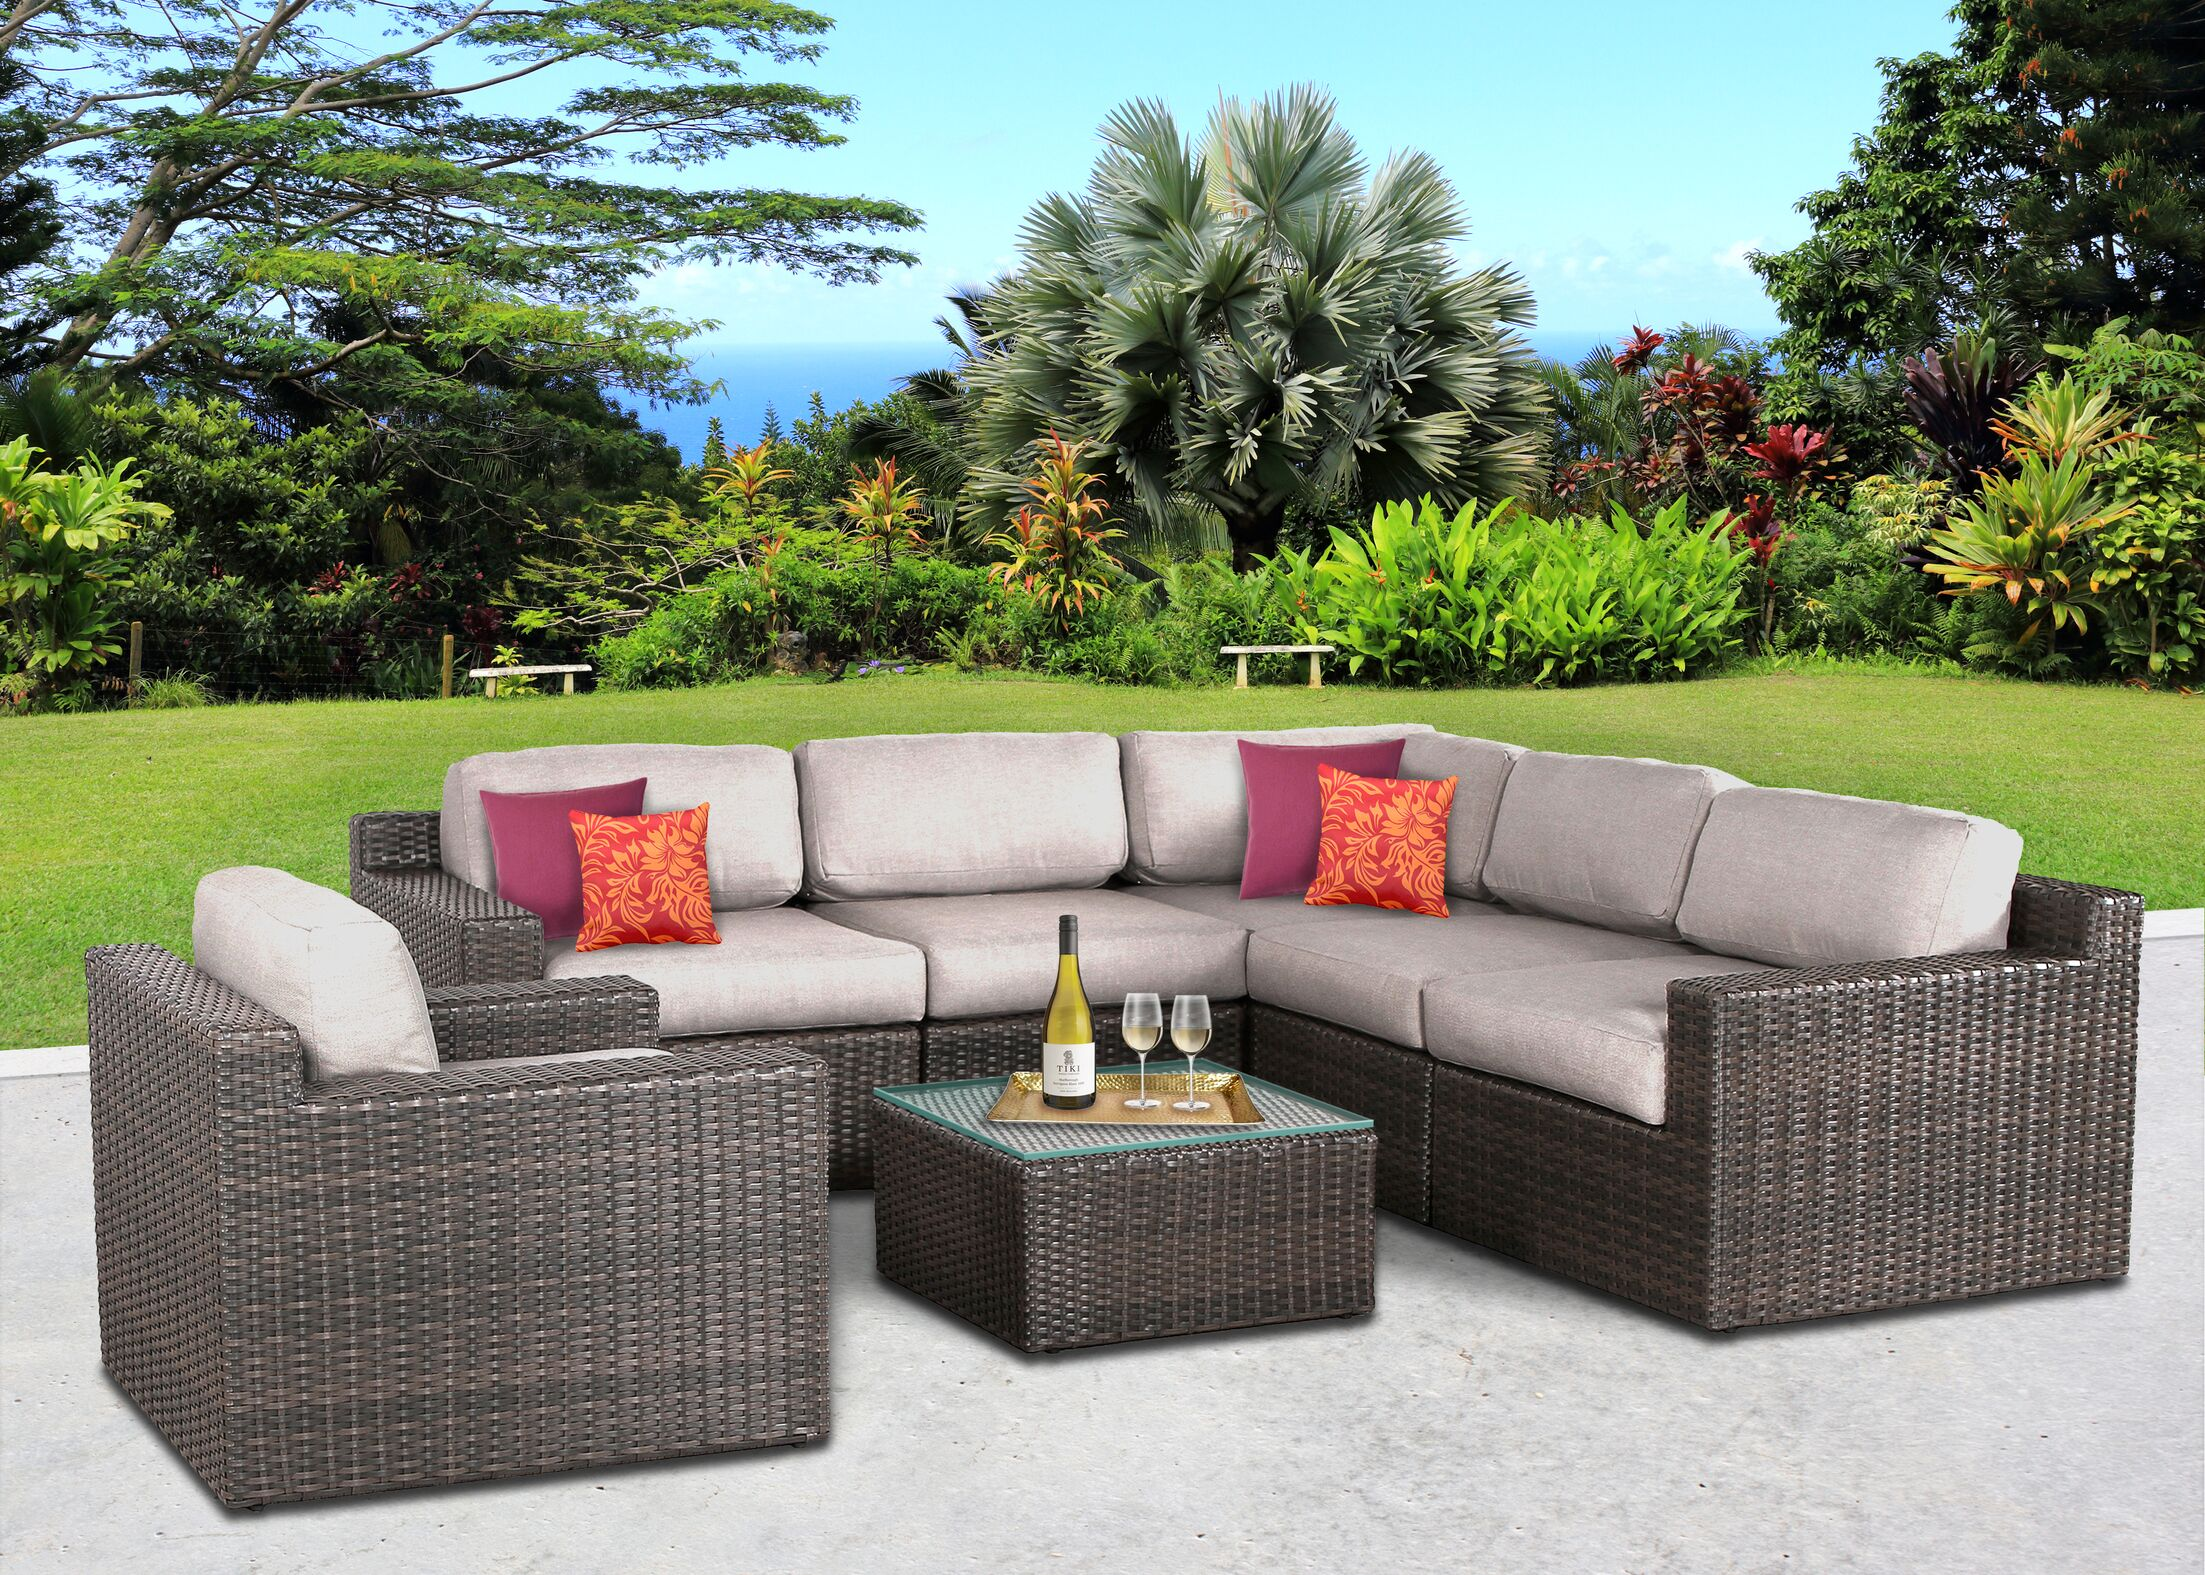 Sabin 7 Piece Sectional Set with Cushions Frame Color: Gray